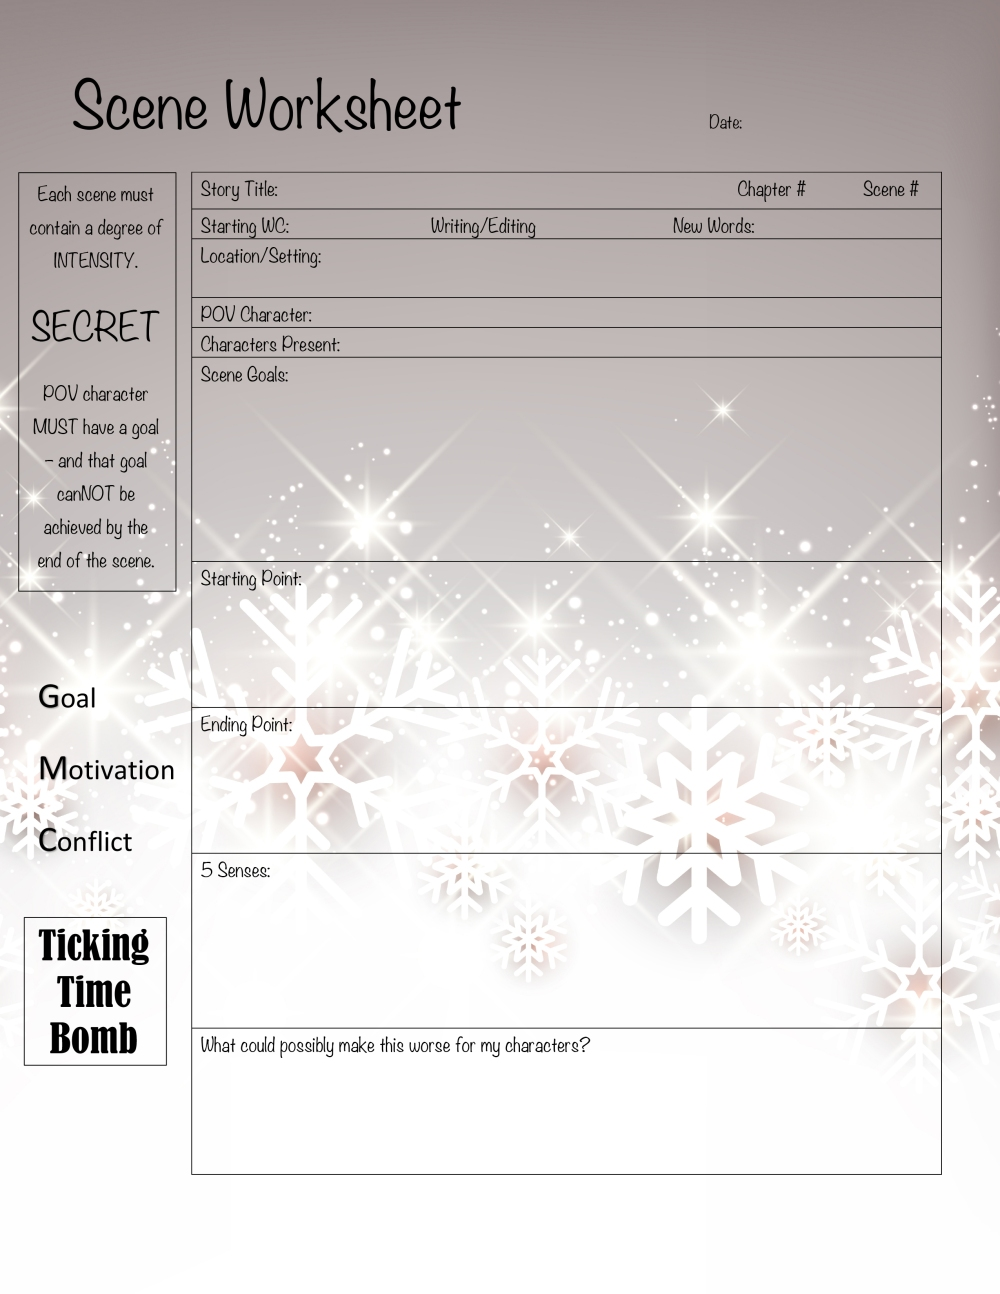 Microsoft Word - Scene Worksheet Snowflakes from Top.docx